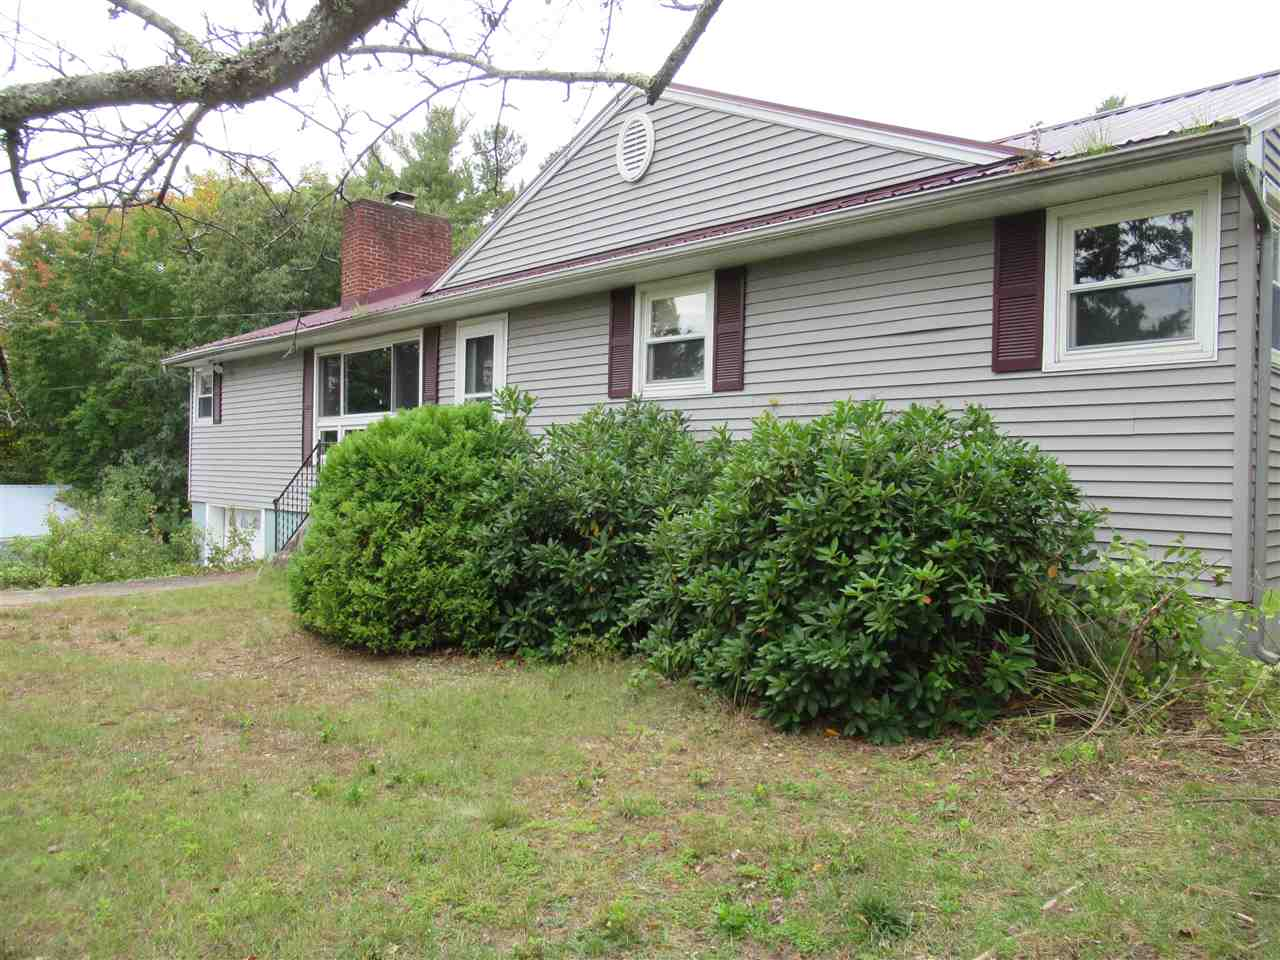 MLS 4780326: 119 Rockingham Road, Windham NH